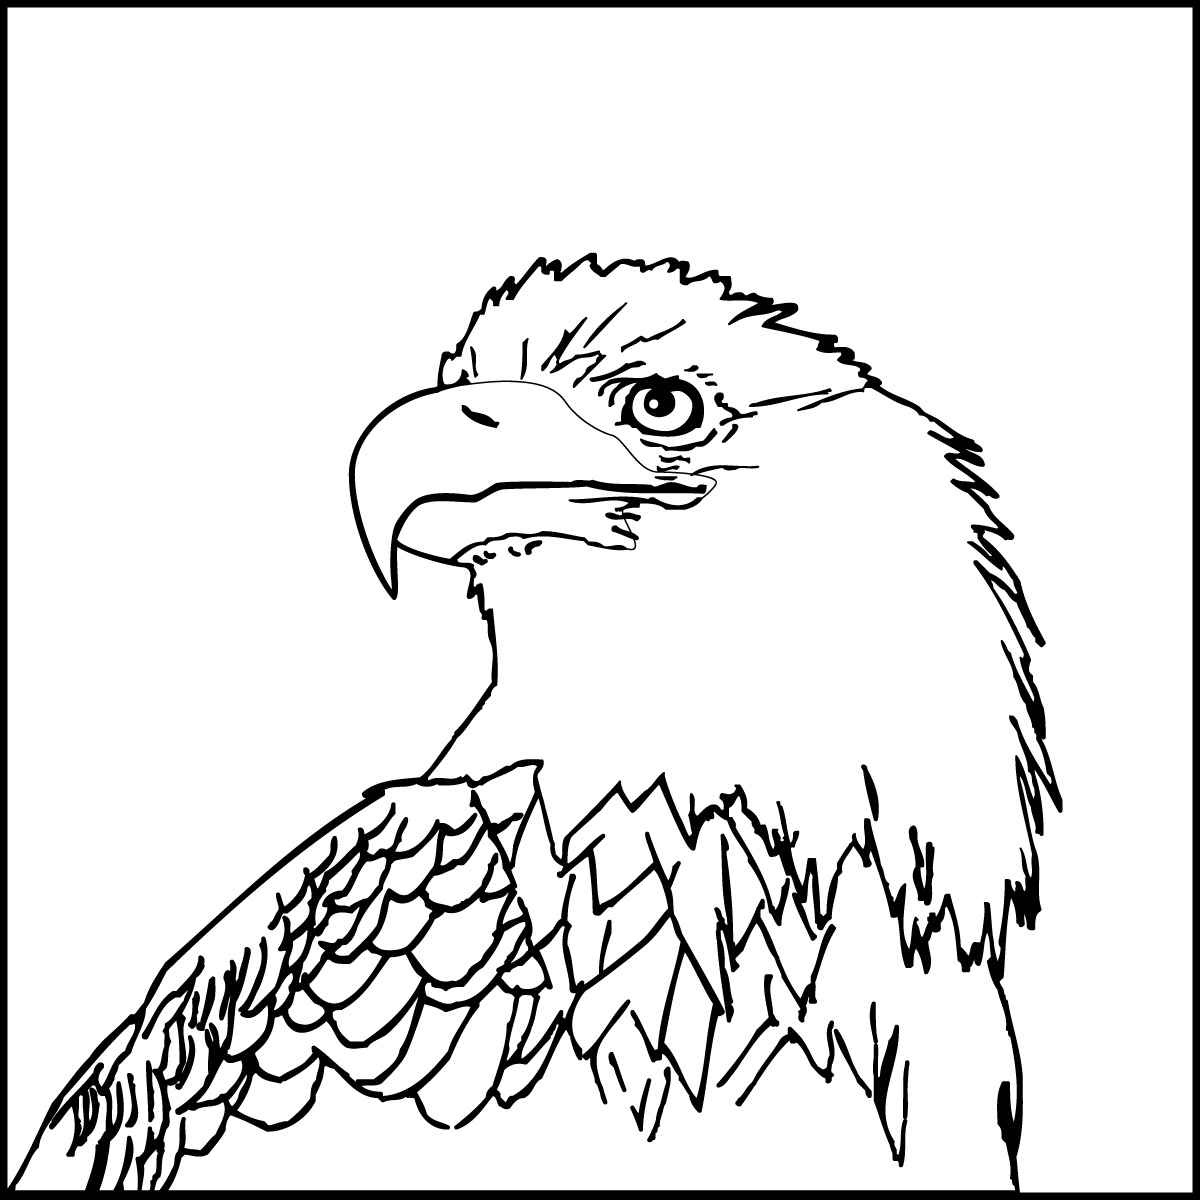 bald eagle coloring sheet bald eagle coloring pages download and print for free sheet coloring bald eagle